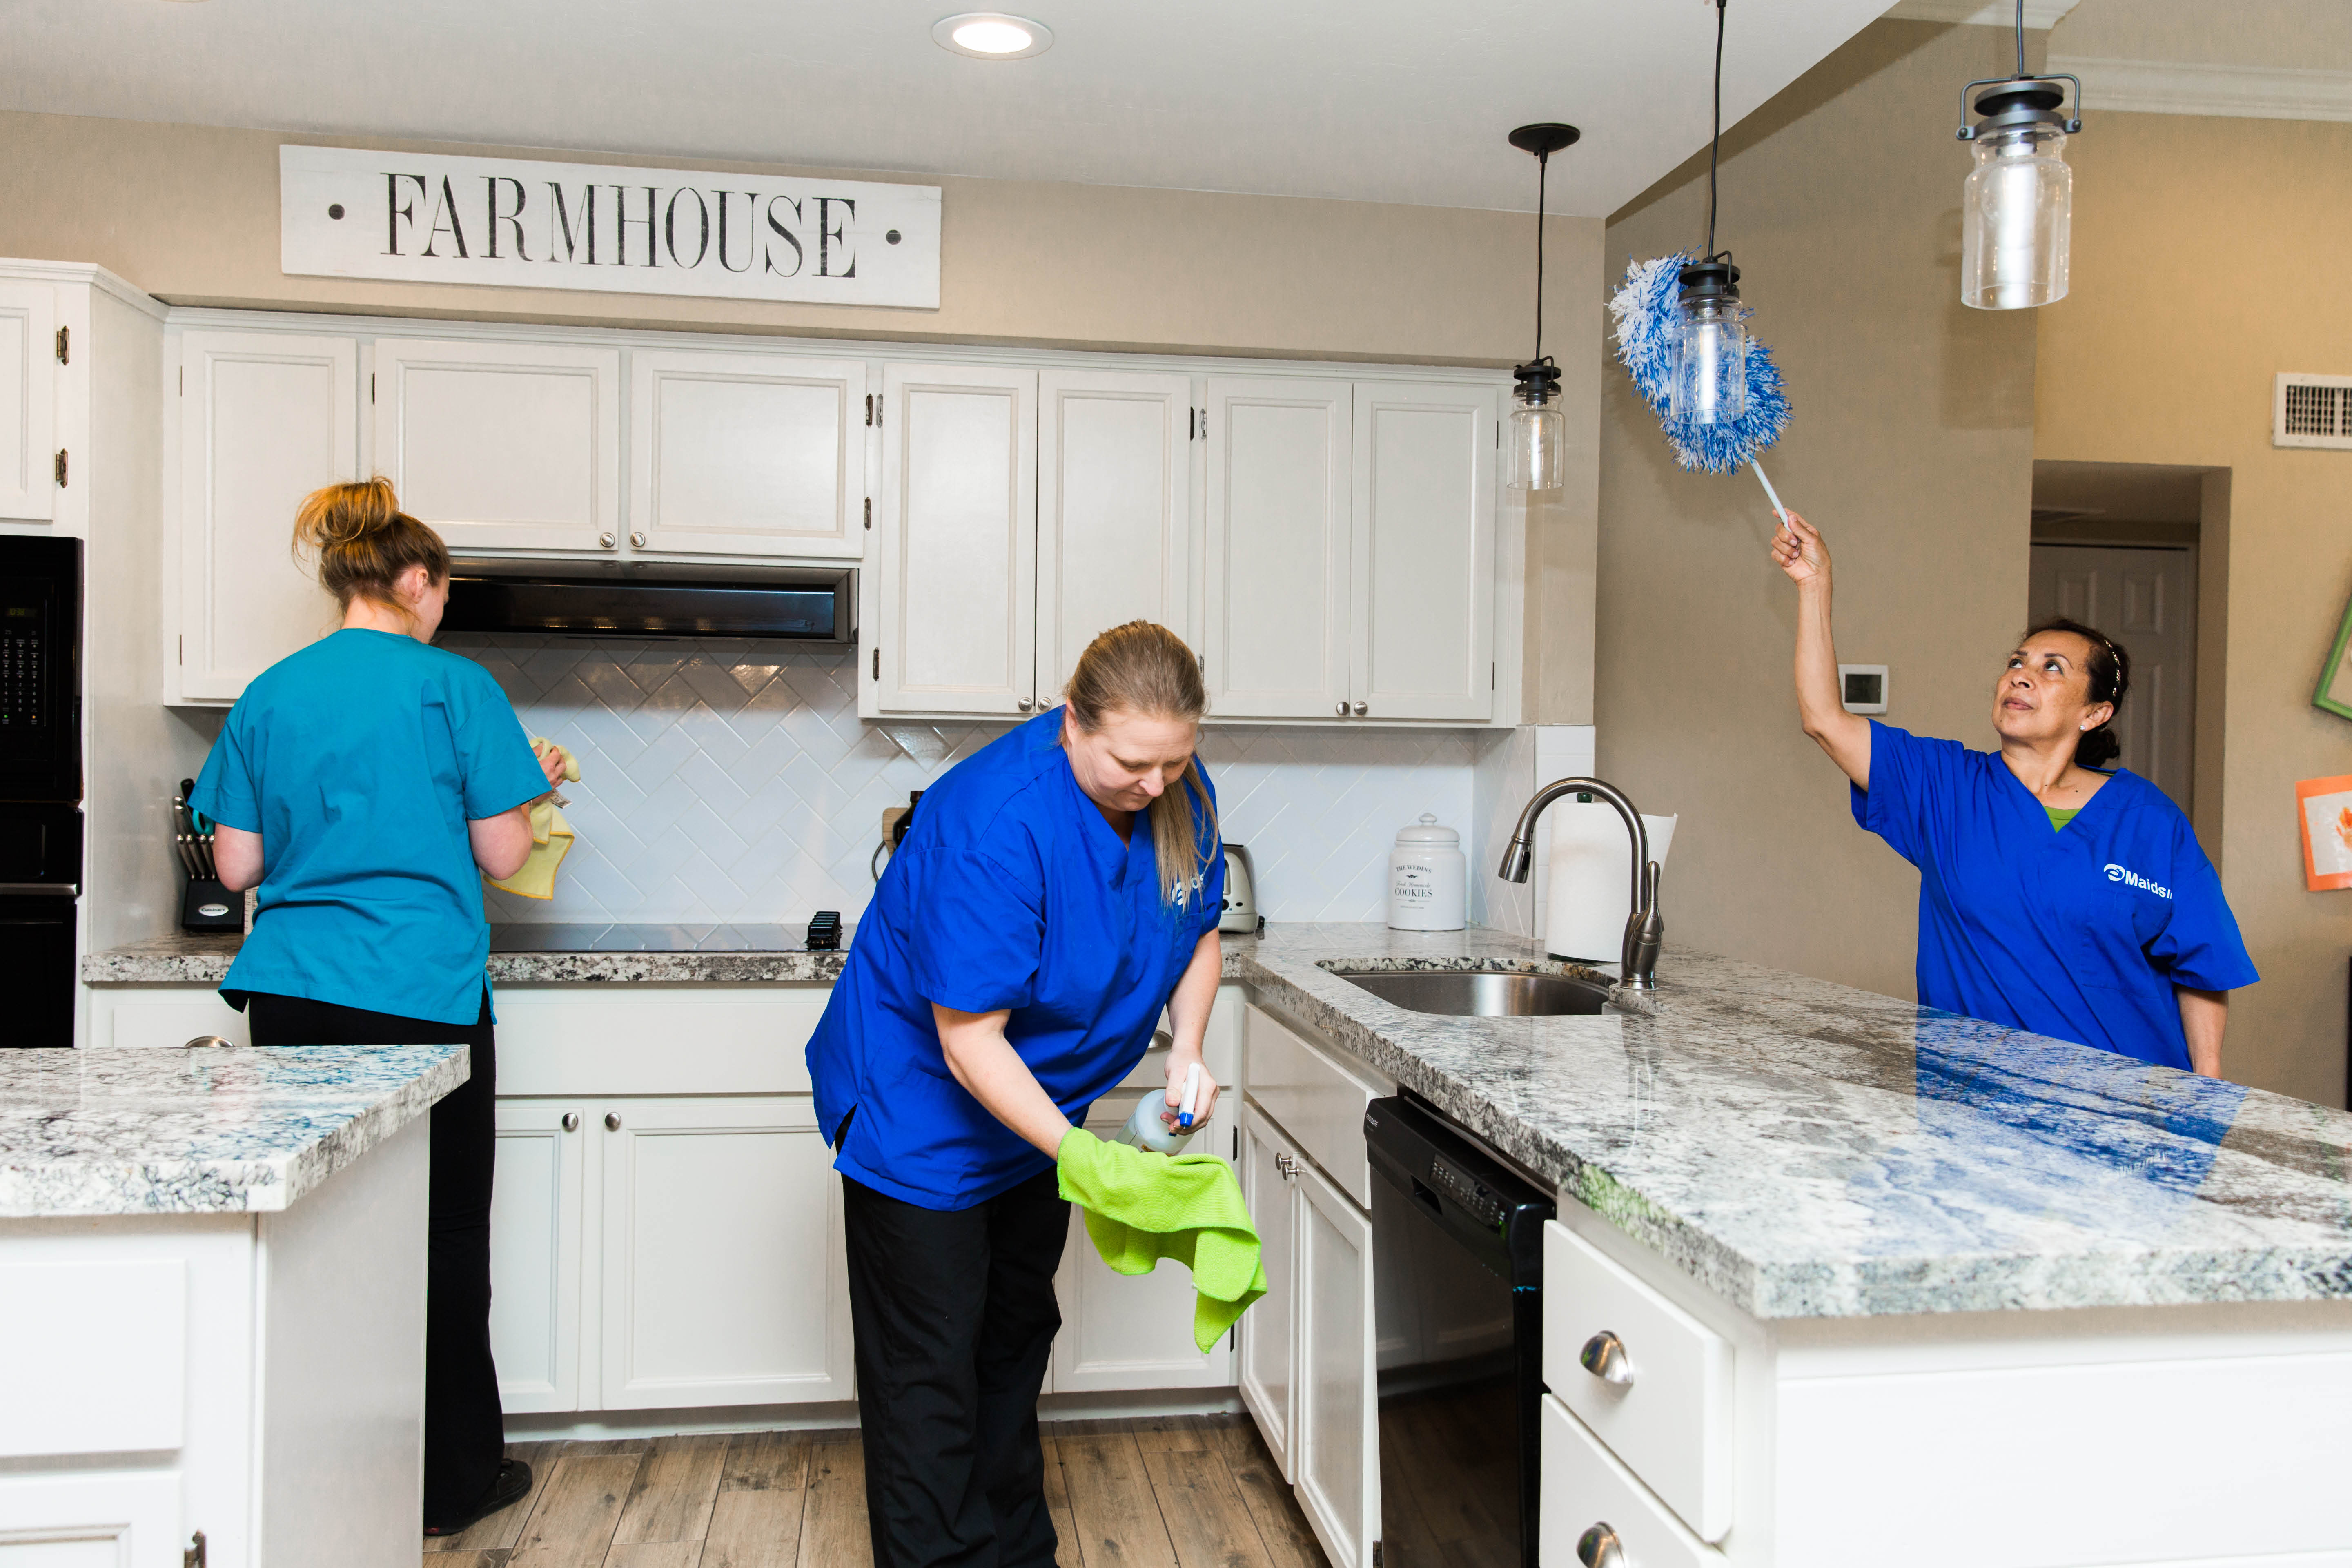 professional house cleaning service, full service cleaning company, local house cleaning